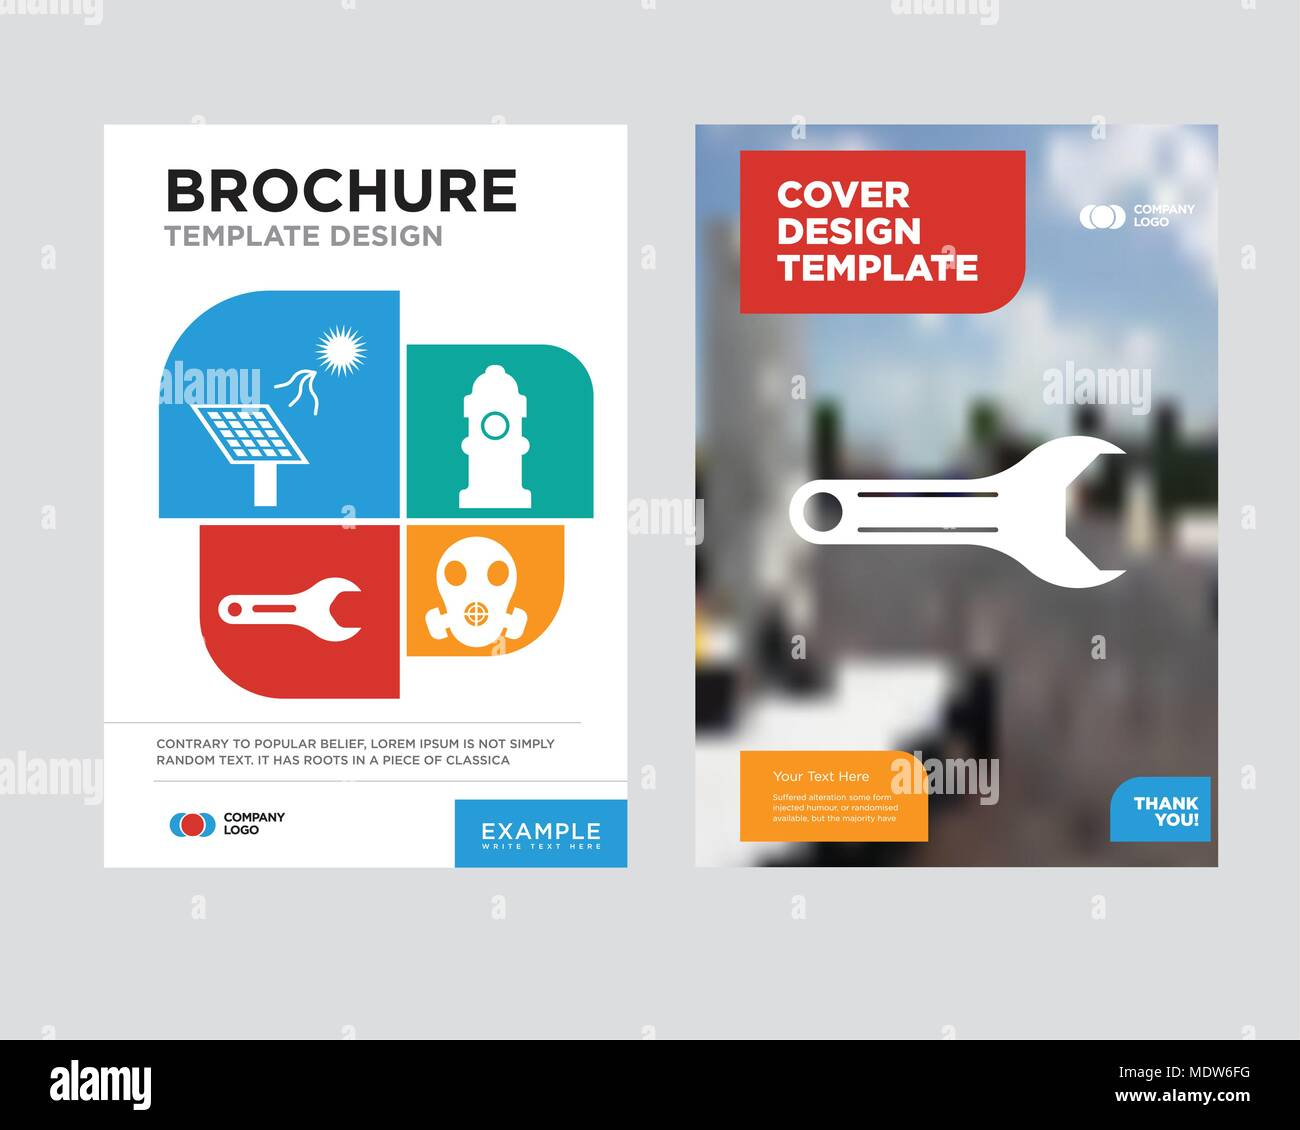 adjustable wrench brochure flyer design template with abstract photo